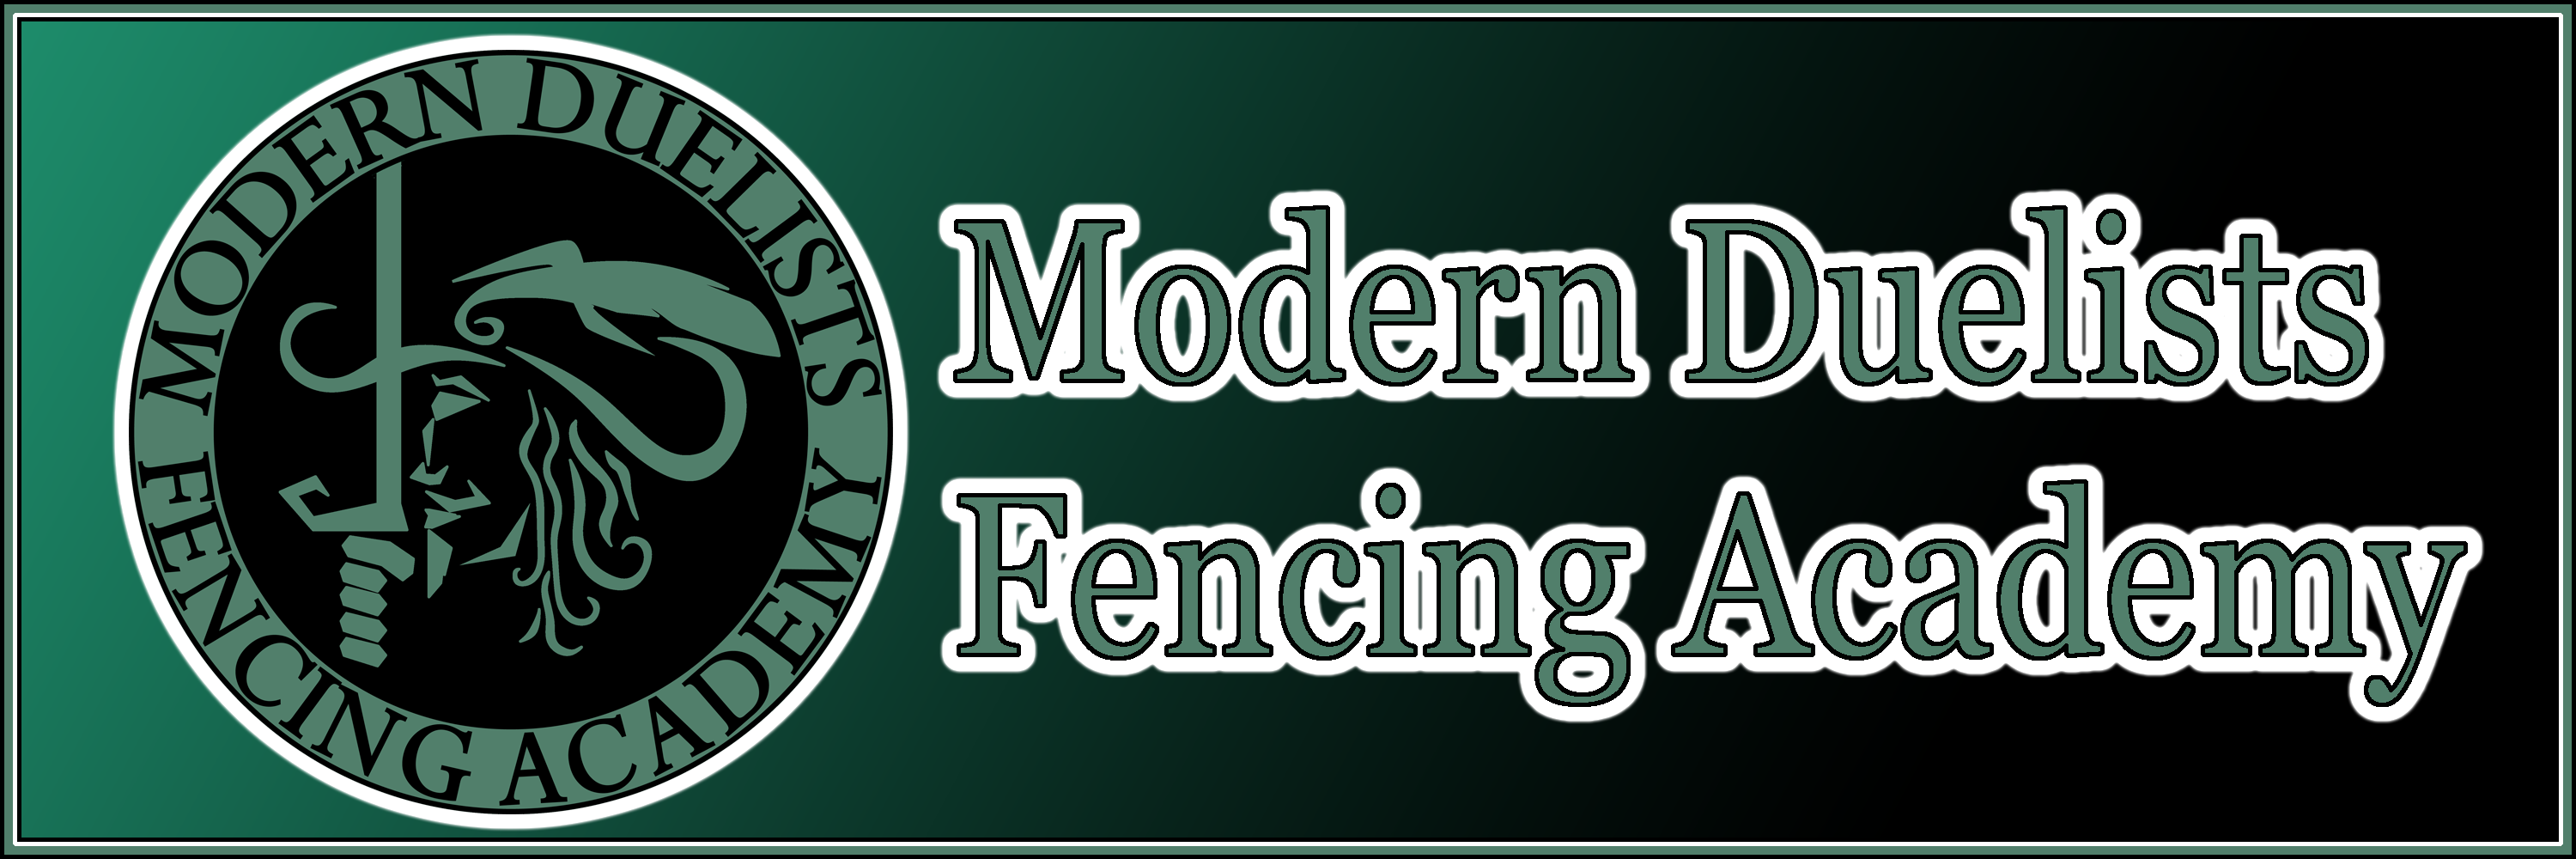 Modern Duelists Fencing Academy